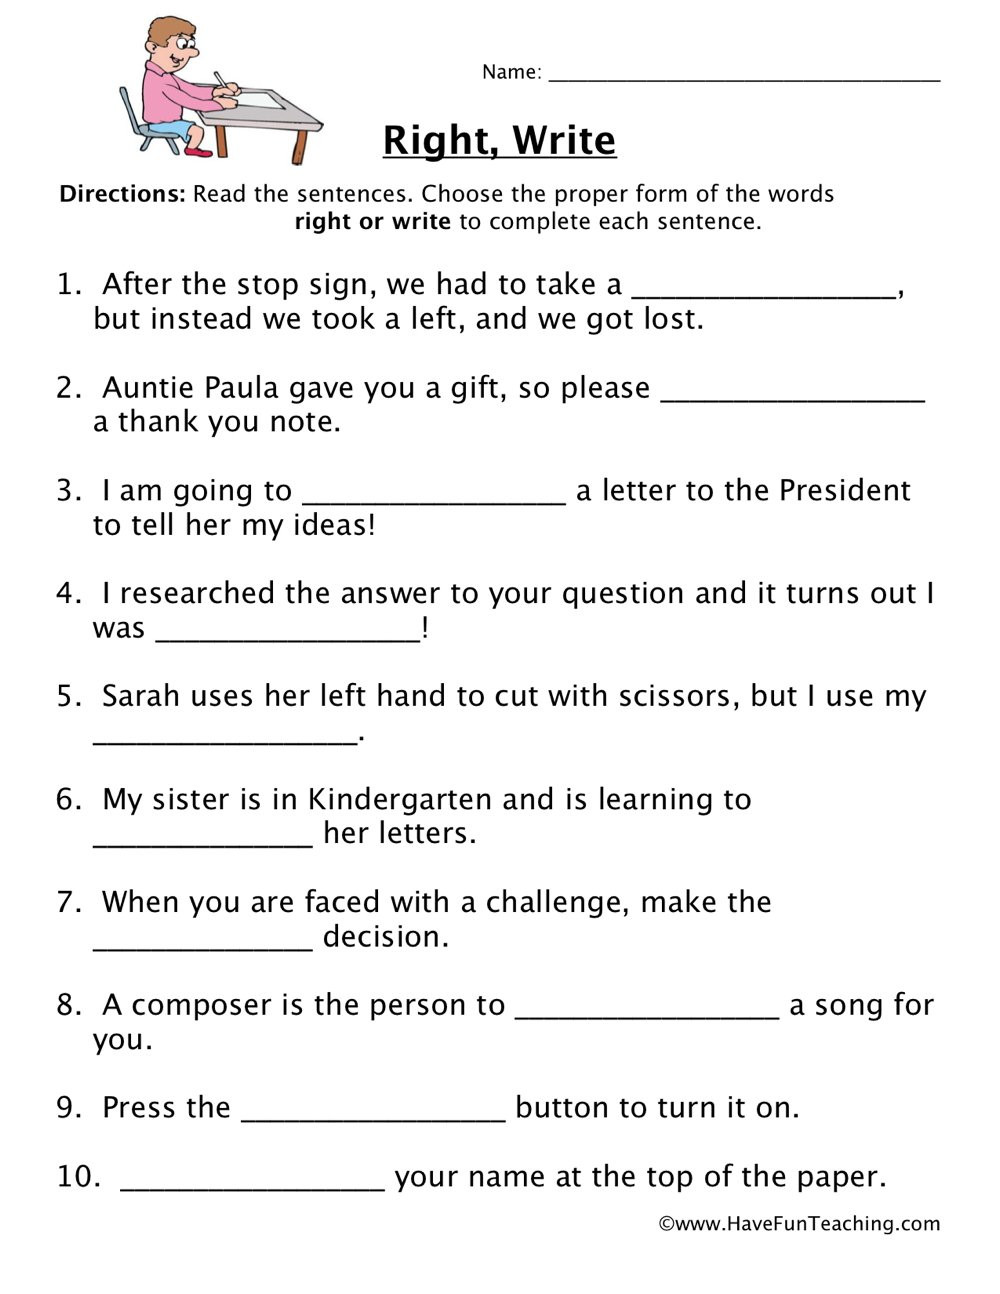 Homophone Worksheets 5th Grade Right Write Homophones Worksheet